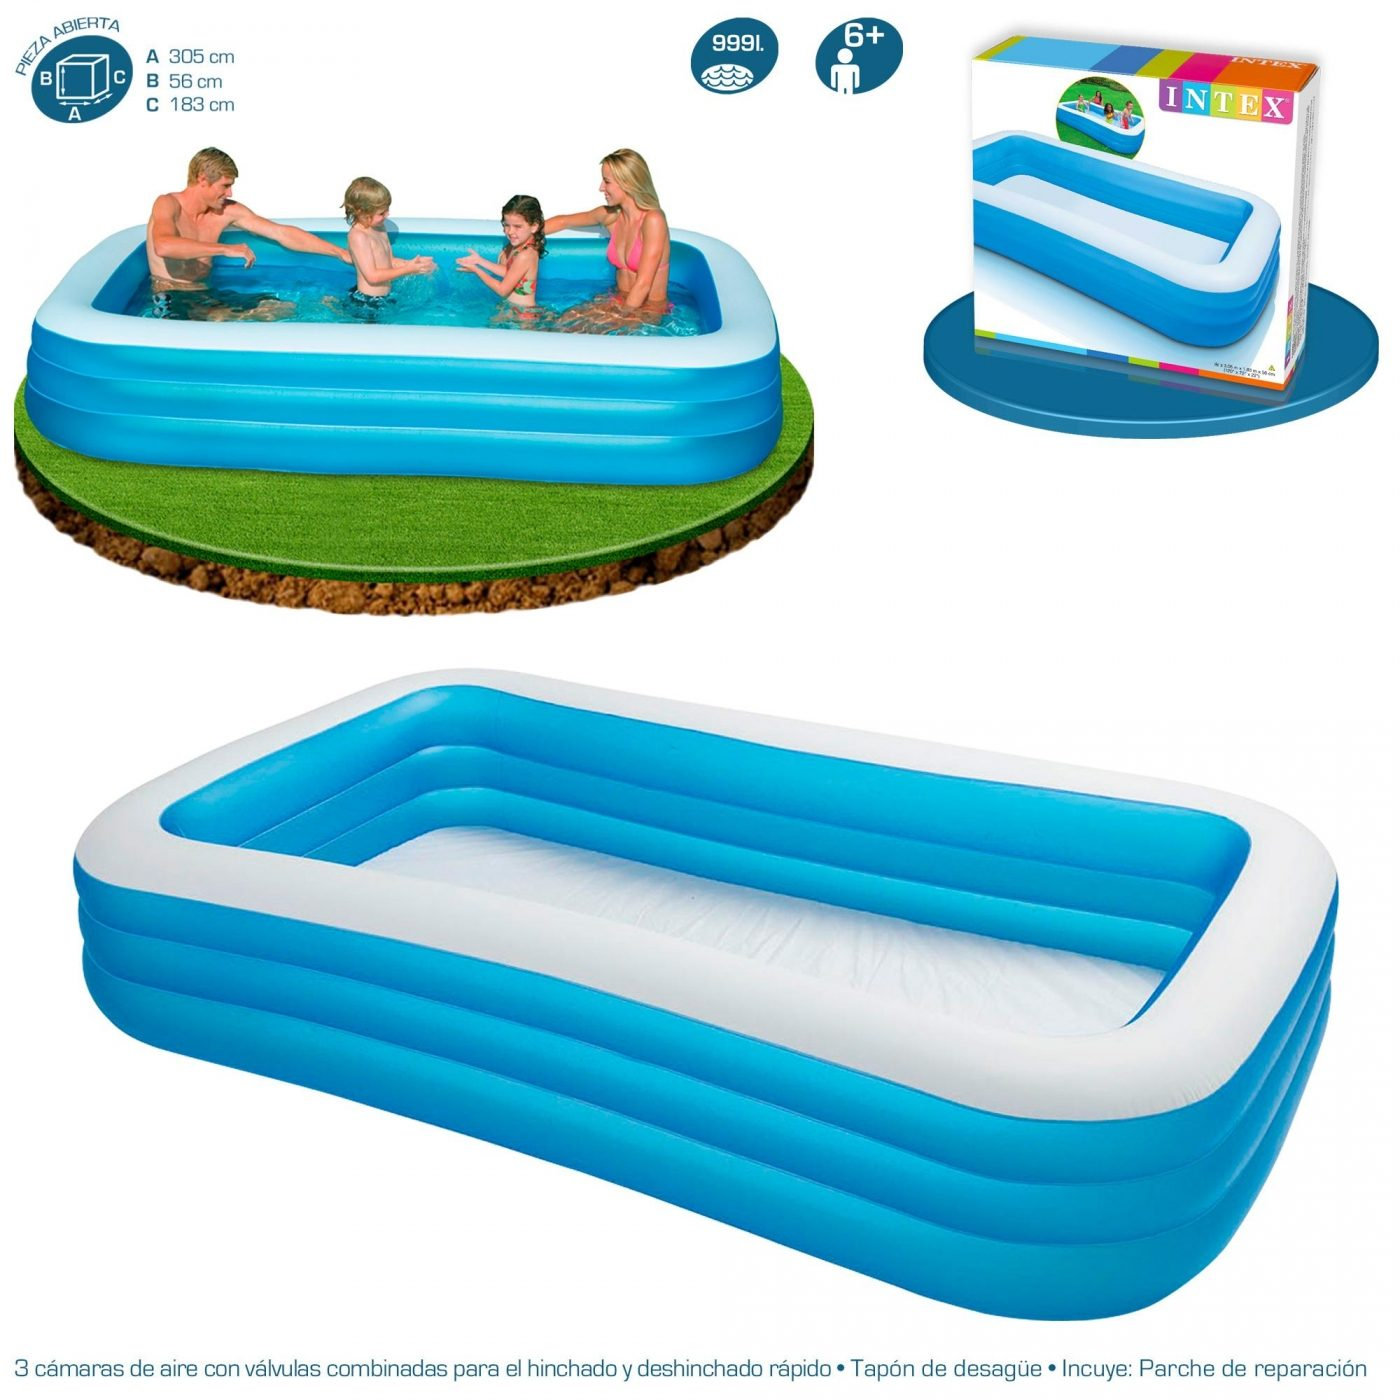 Piscina Intex Familiar Piscina Blanca Y Azul 305 X 183 X 56 Cm Intex En Planeta